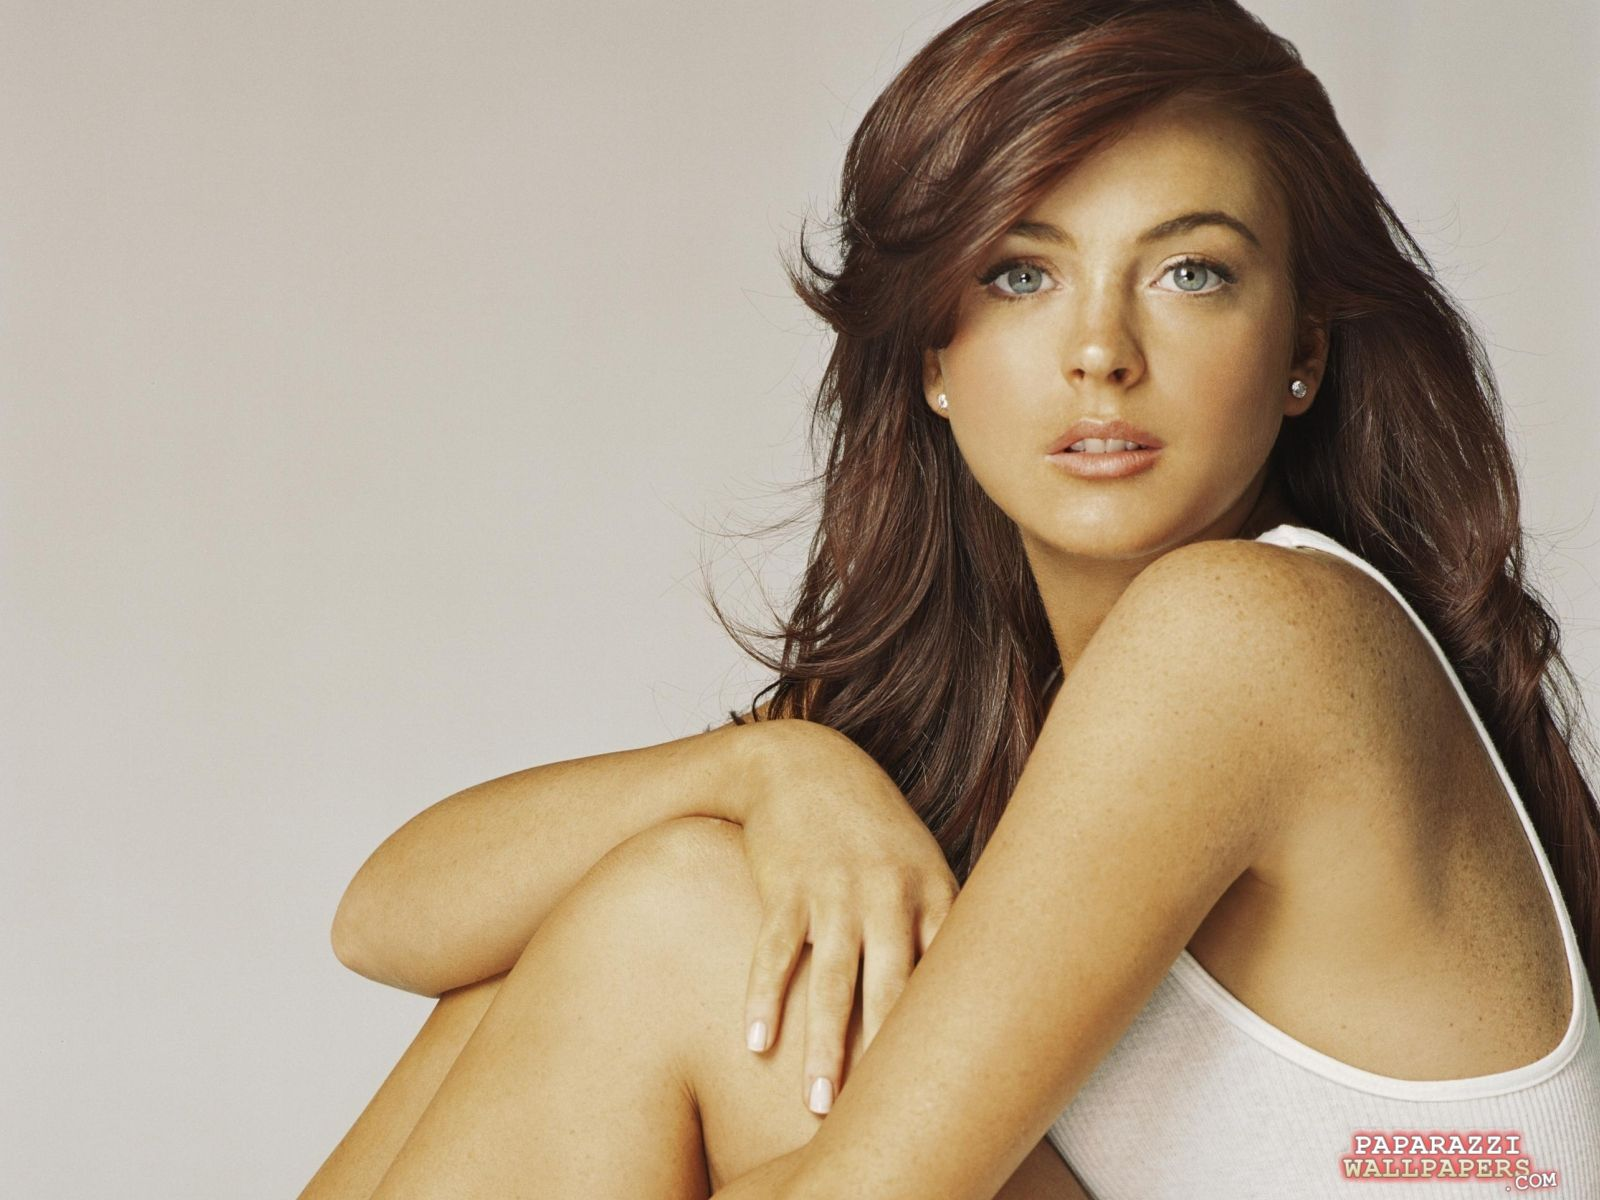 Sexy photos of lindsay lohan